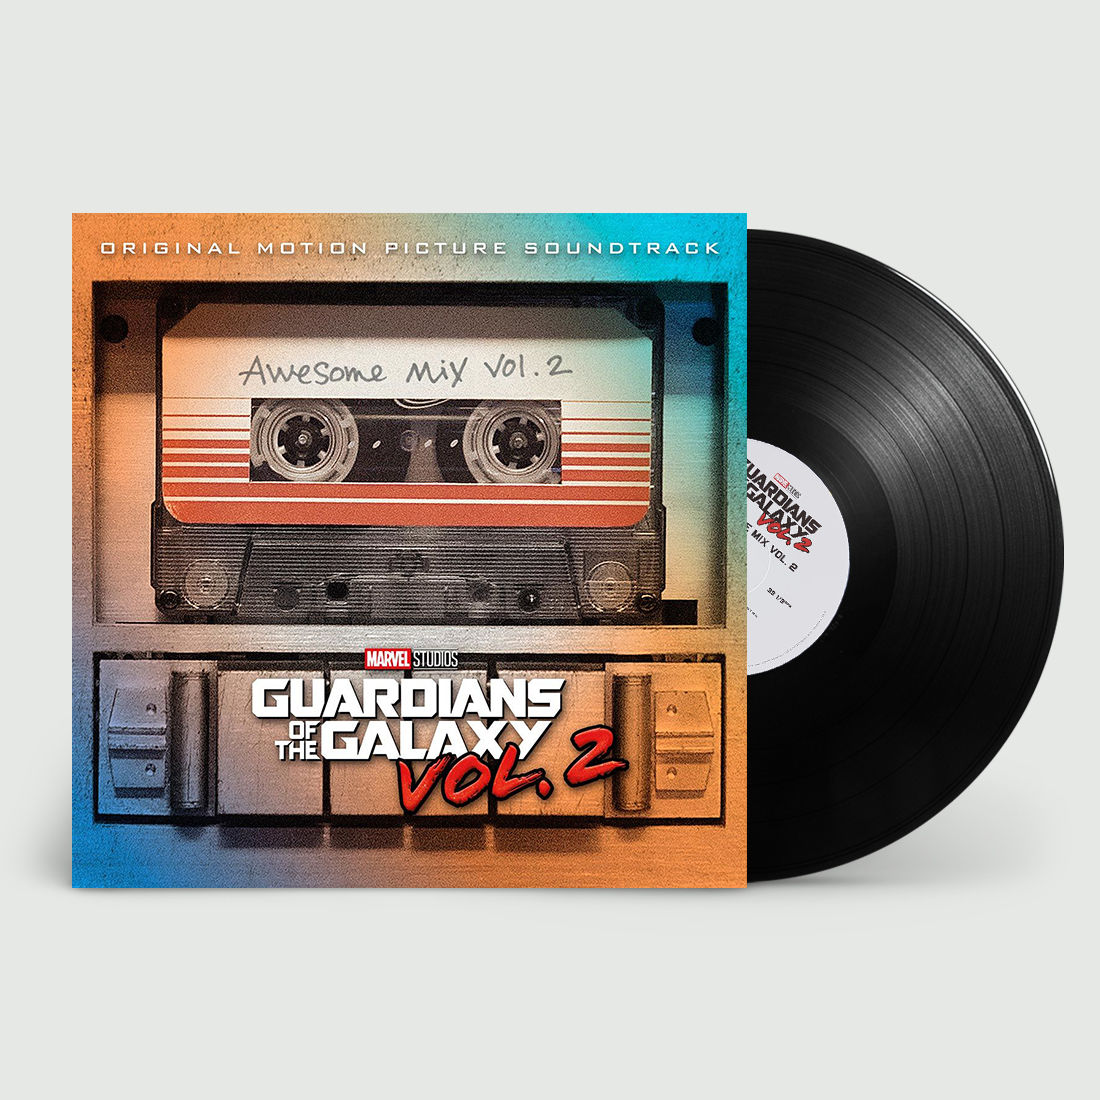 Stream: Das originale Awesome Mix Tape aus Guardians of the Galaxy